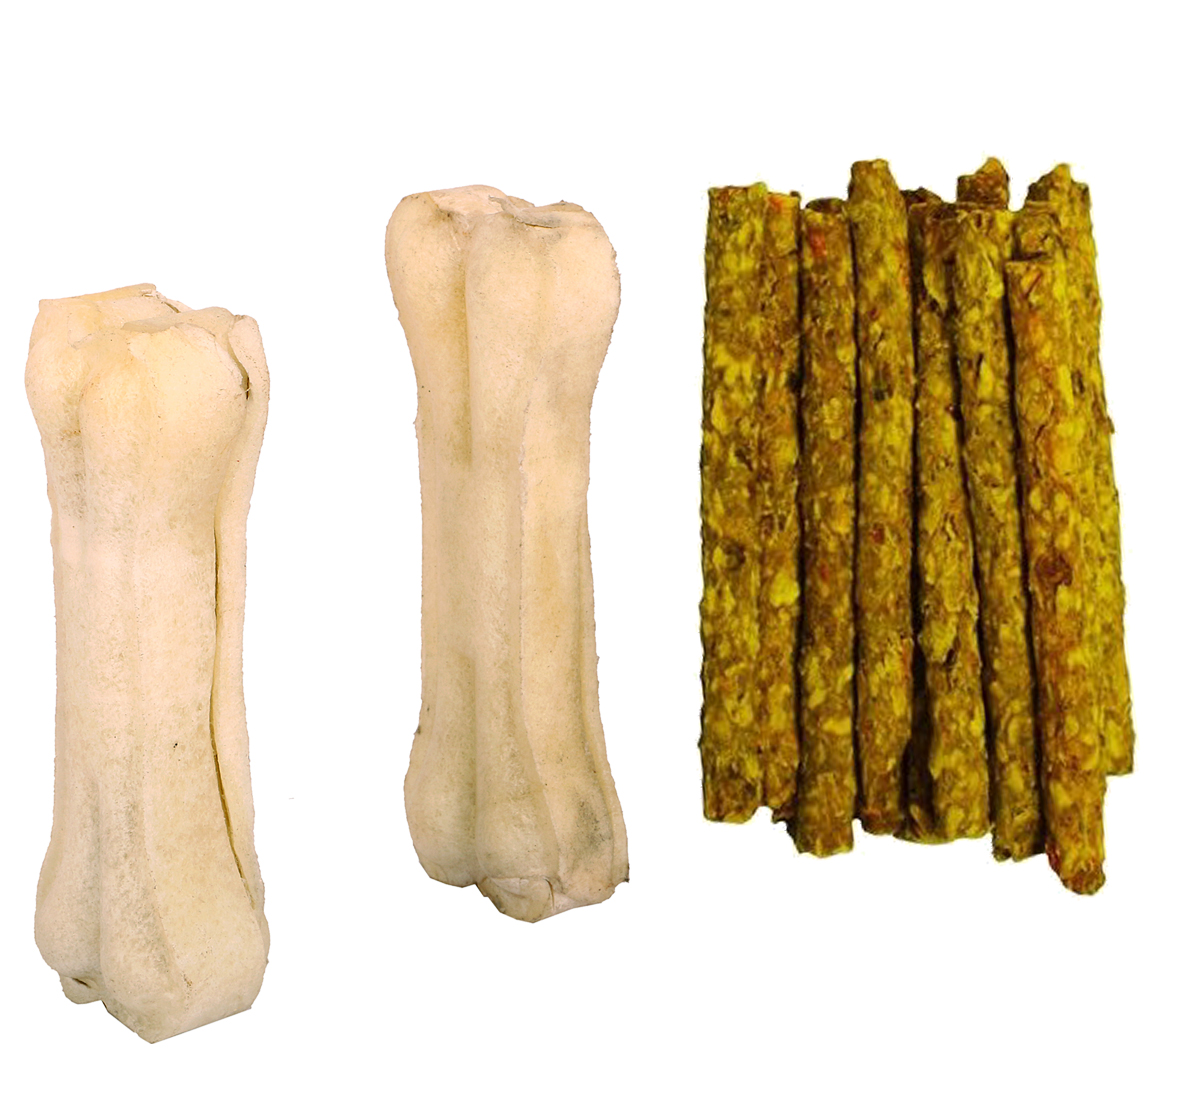 DogSpot Chicken Munchies - 450 Gm with Rawhide Bone 6 Inches - 2 pieces